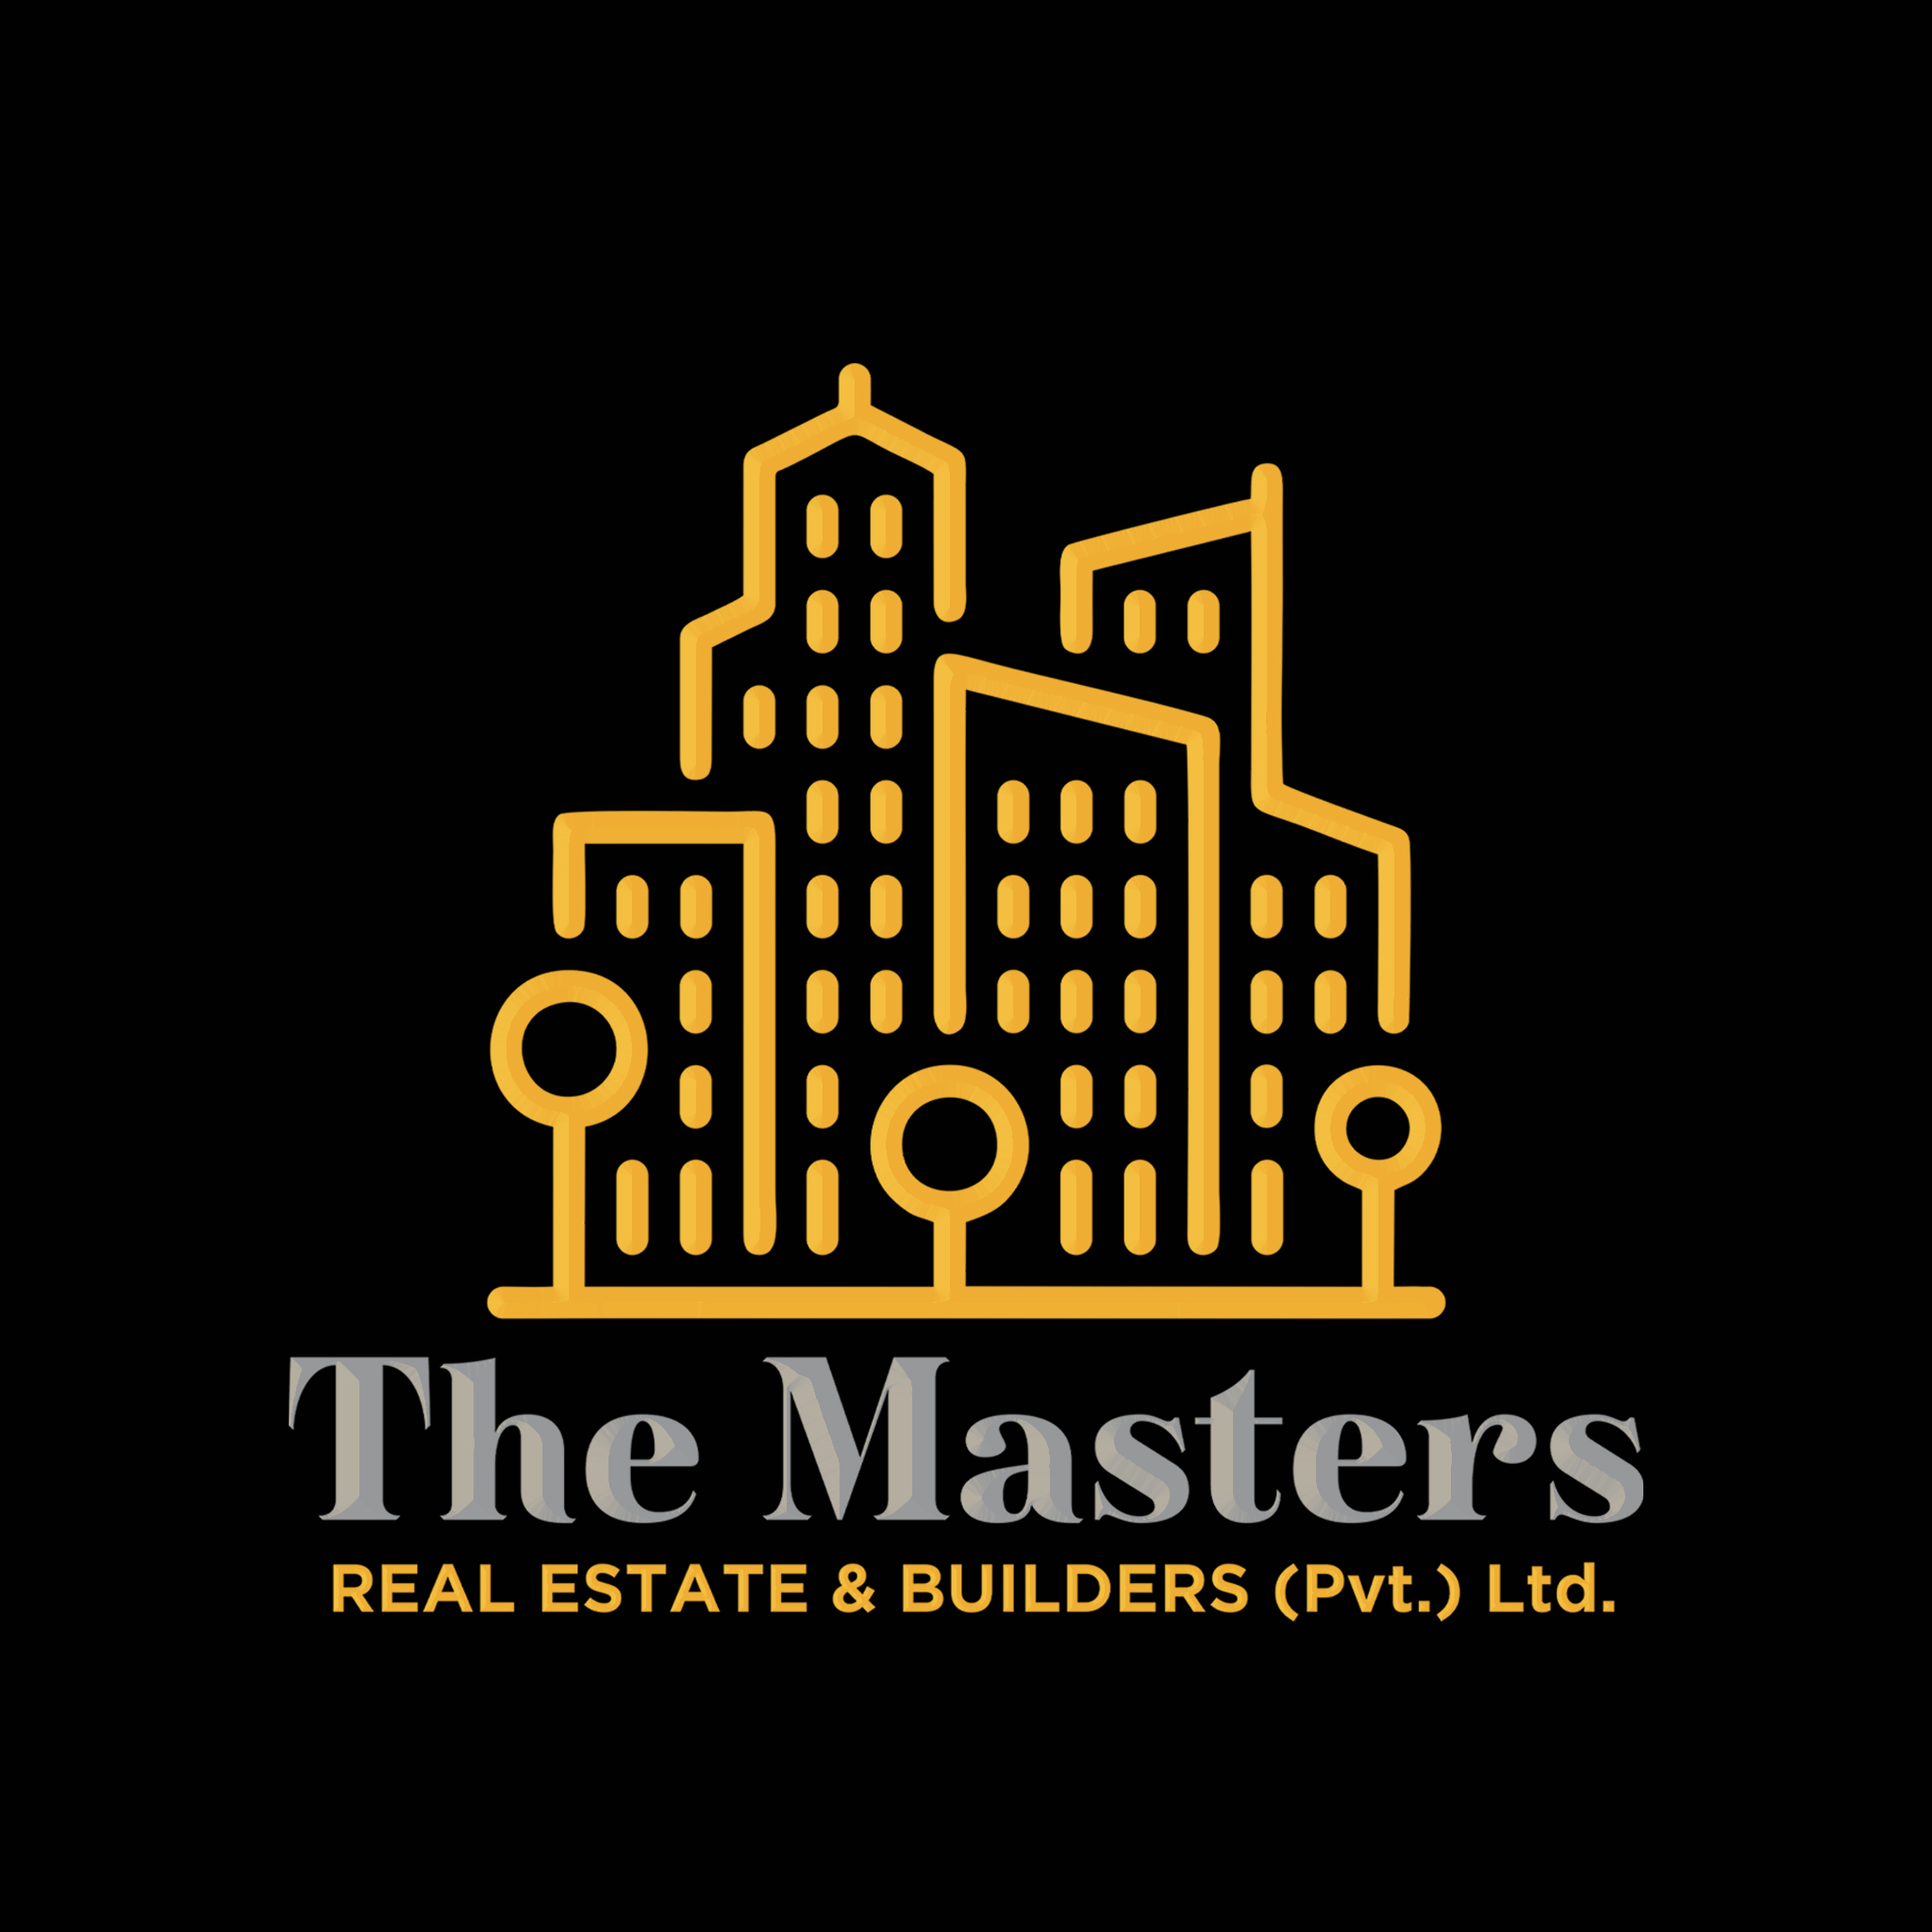 The Masters Real Estate & Builders